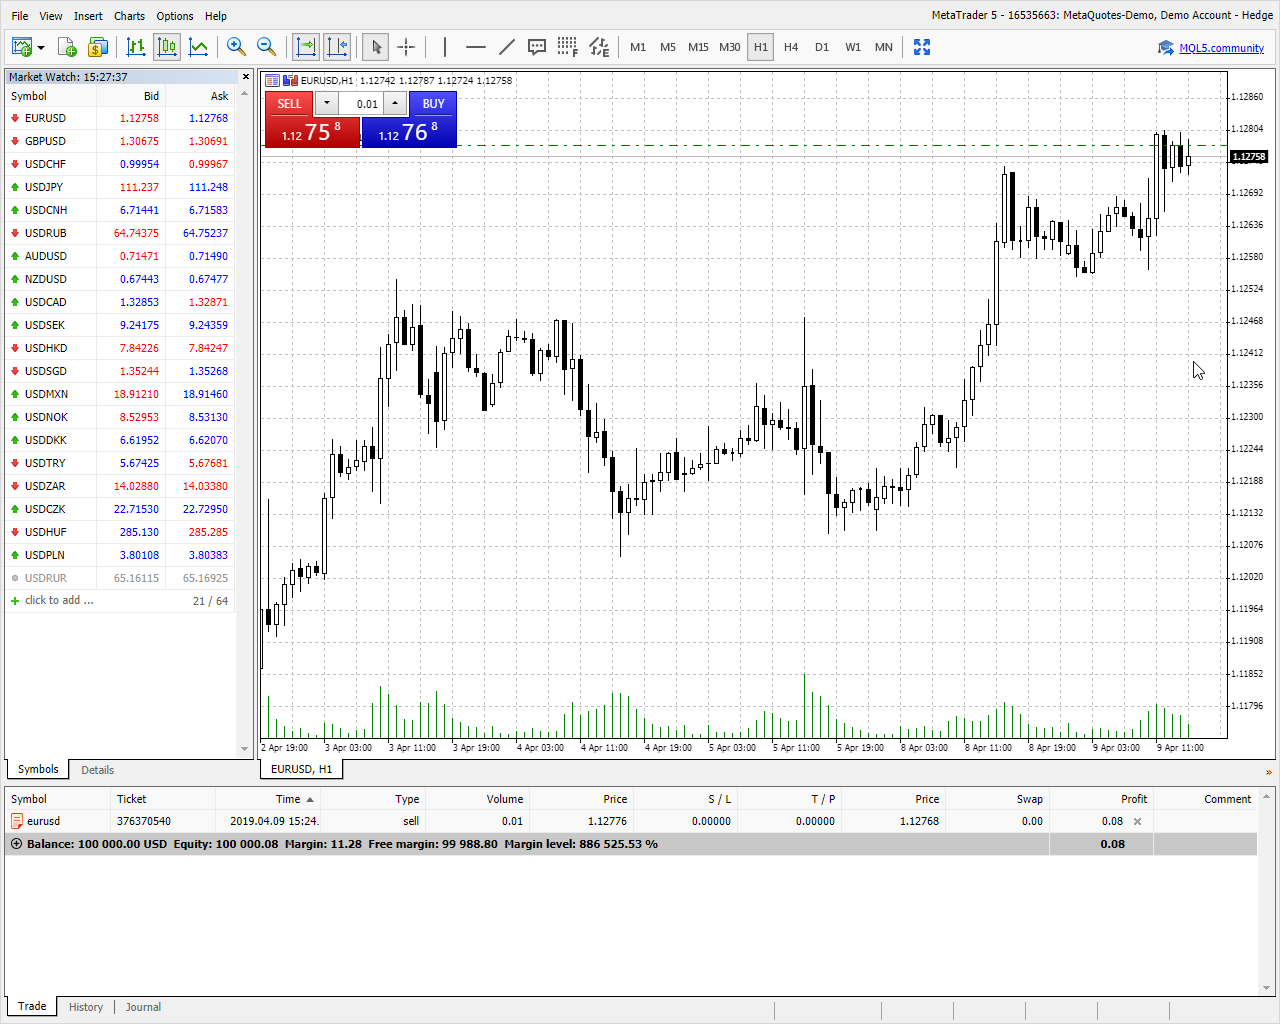 MetaTrader Web终端